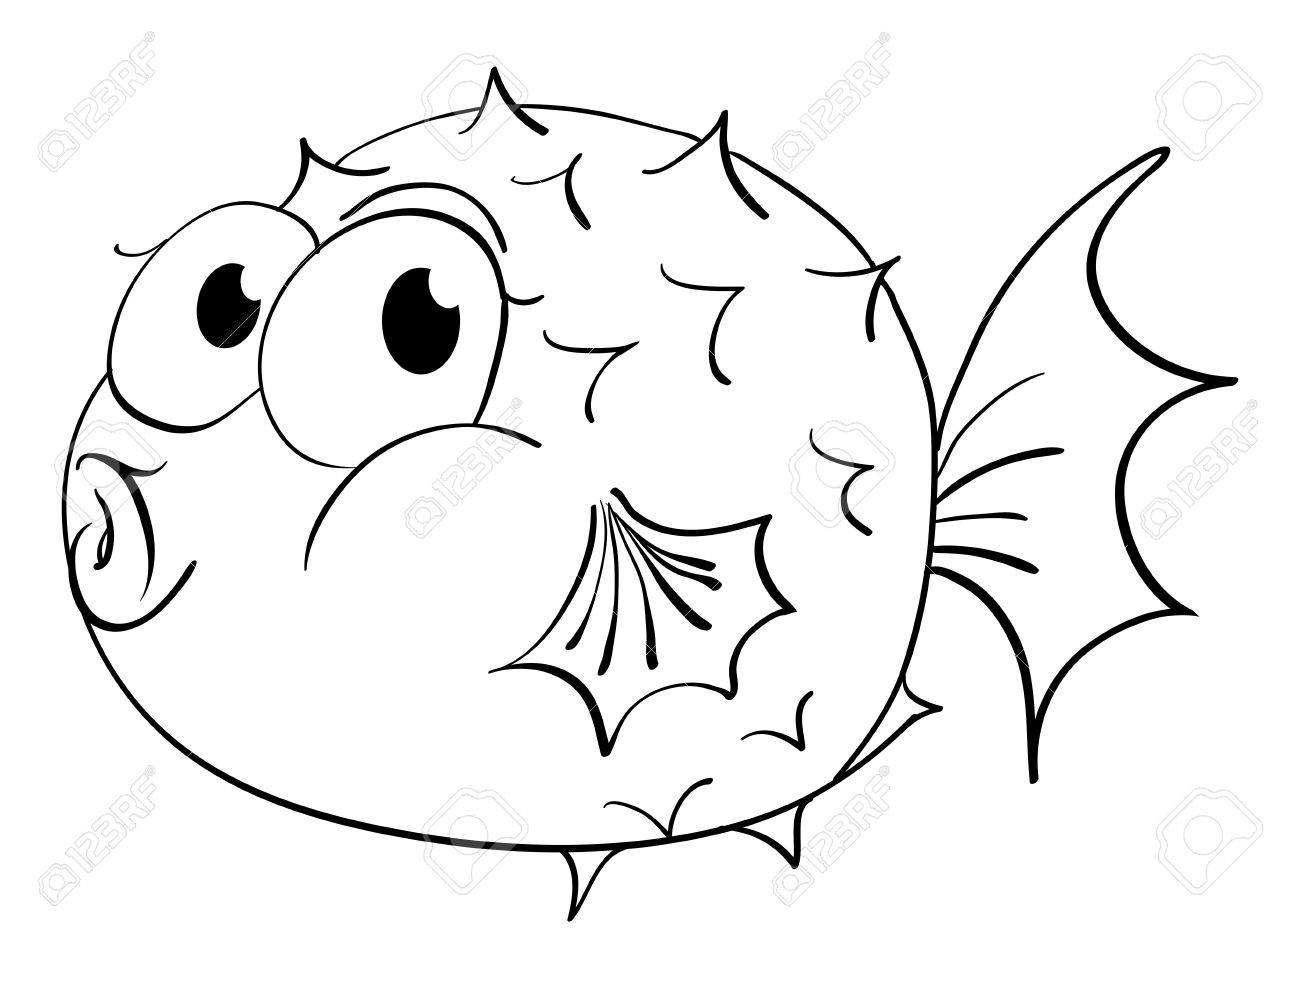 Animal Outline Clipart Wiring Diagrams Prewired Led39s Fusing In Parallel For Puffer Fish Illustration Royalty Free Cliparts Rh 123rf Com